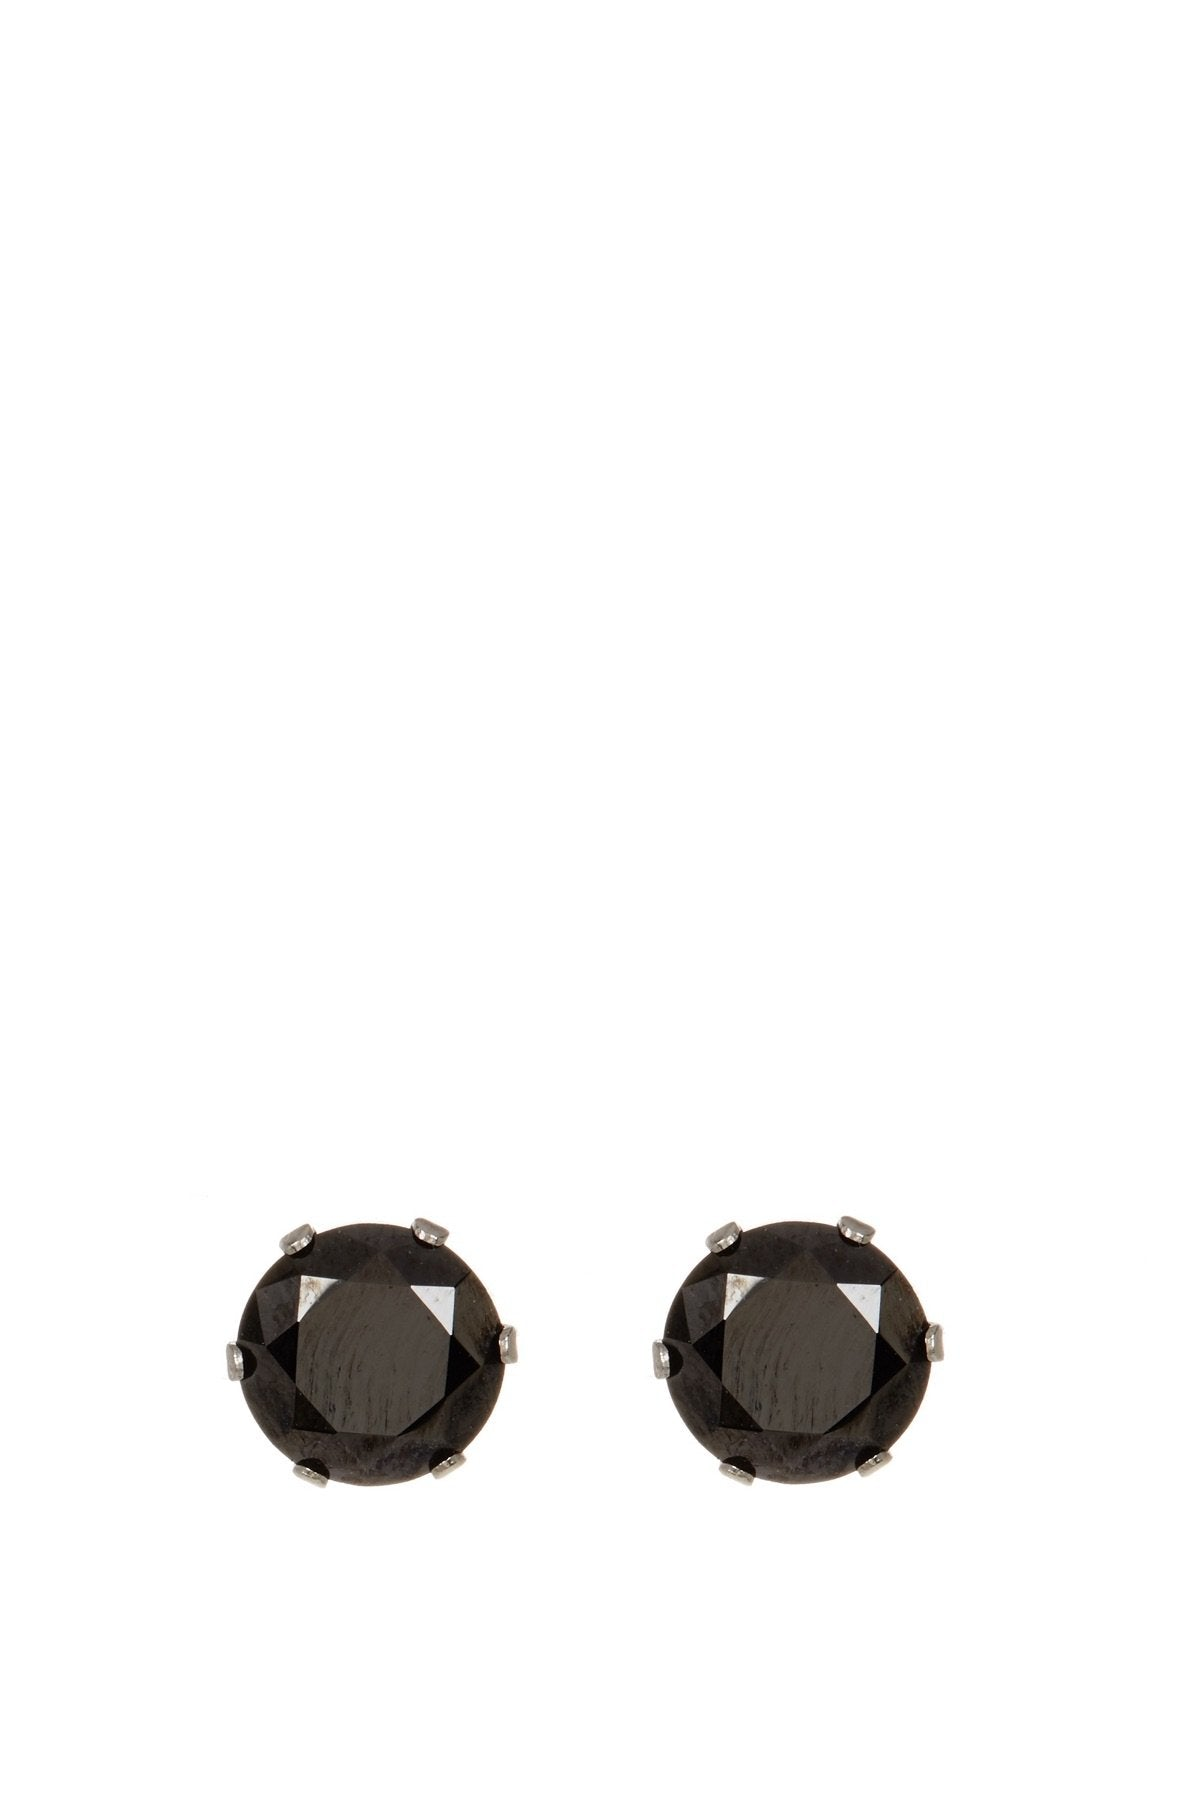 Black Cz Stud Earrings